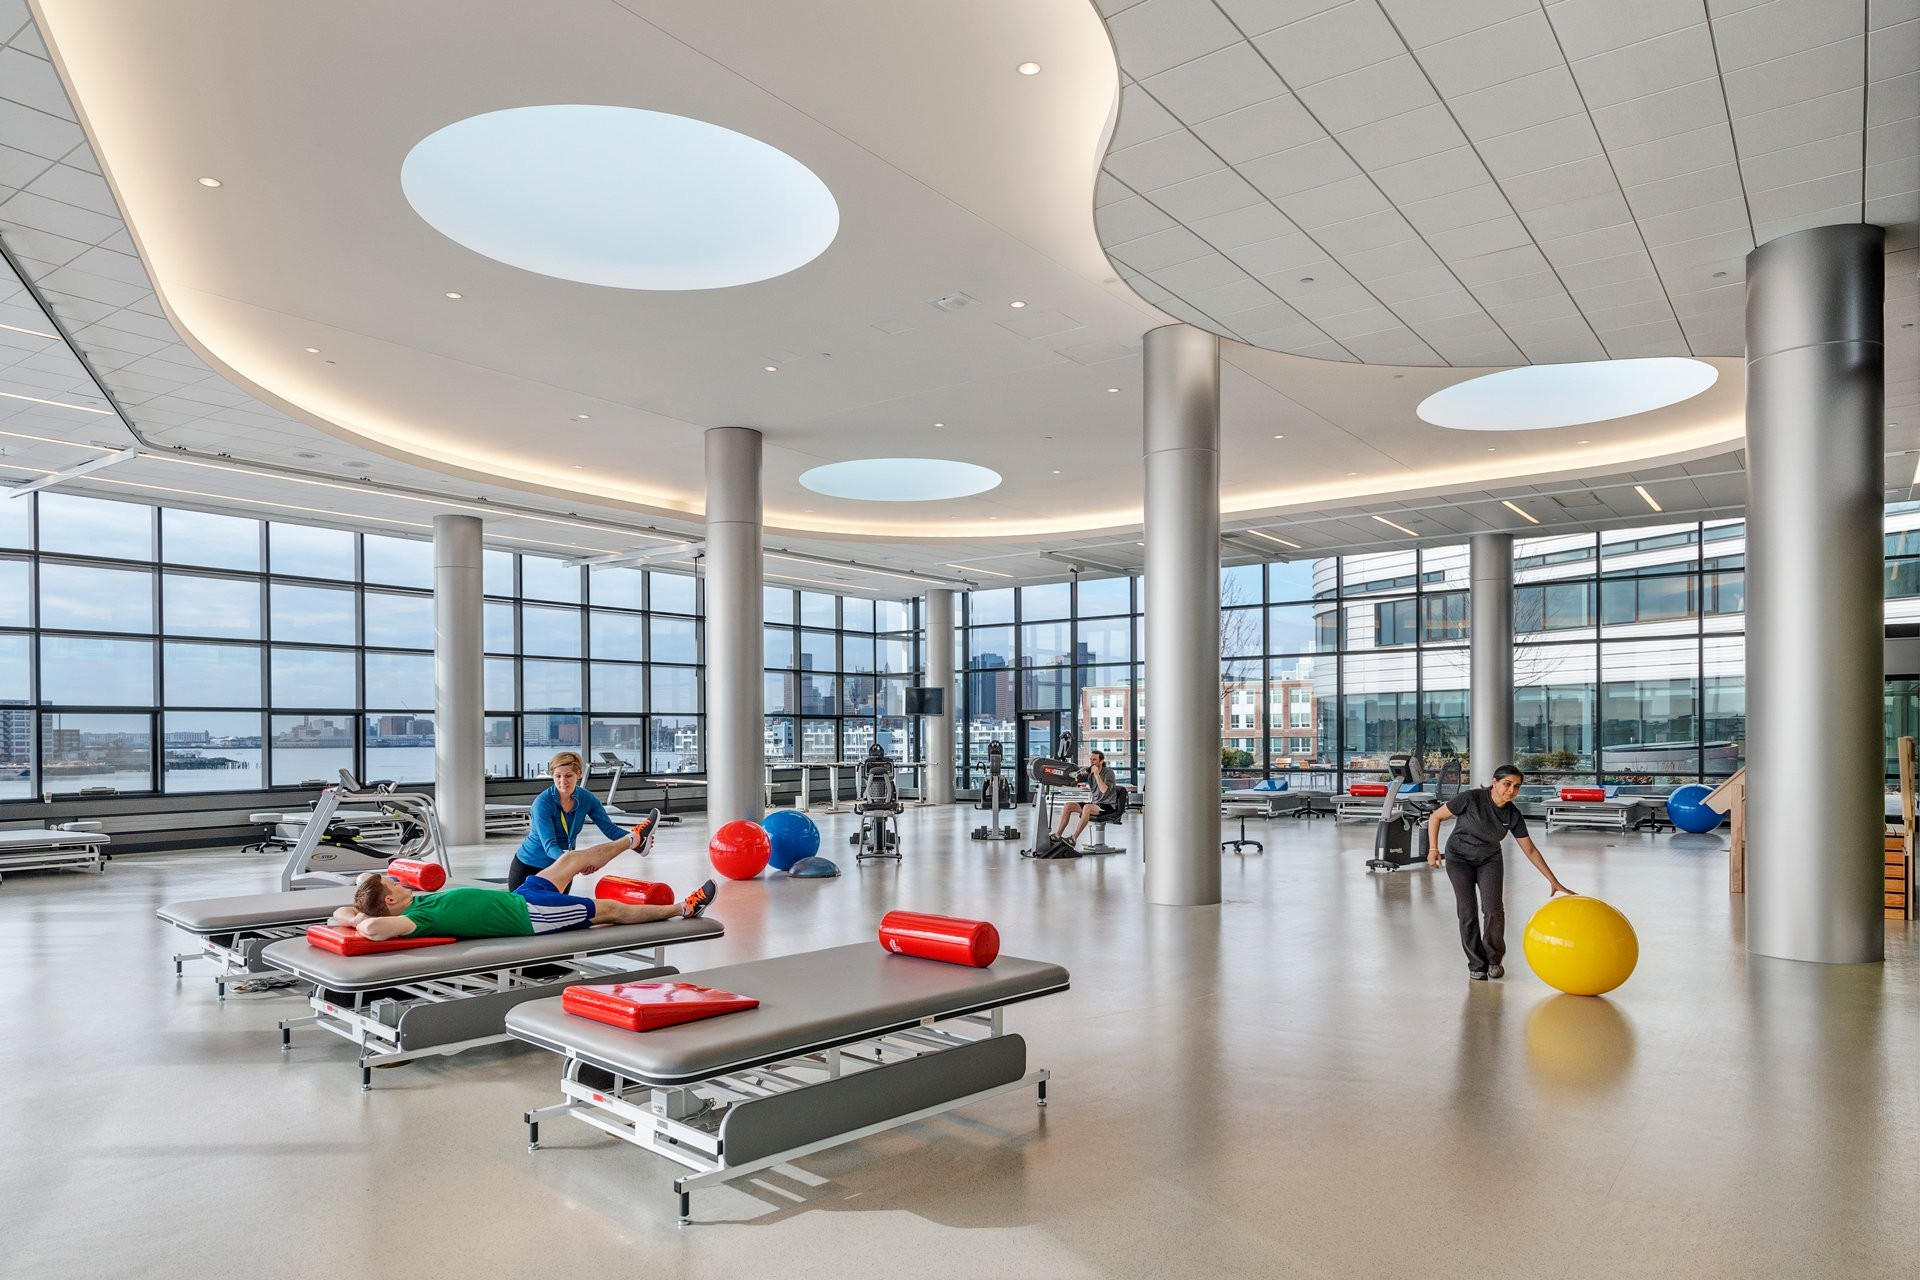 Spaulding Rehabilitation Hospital Bsa Design Awards